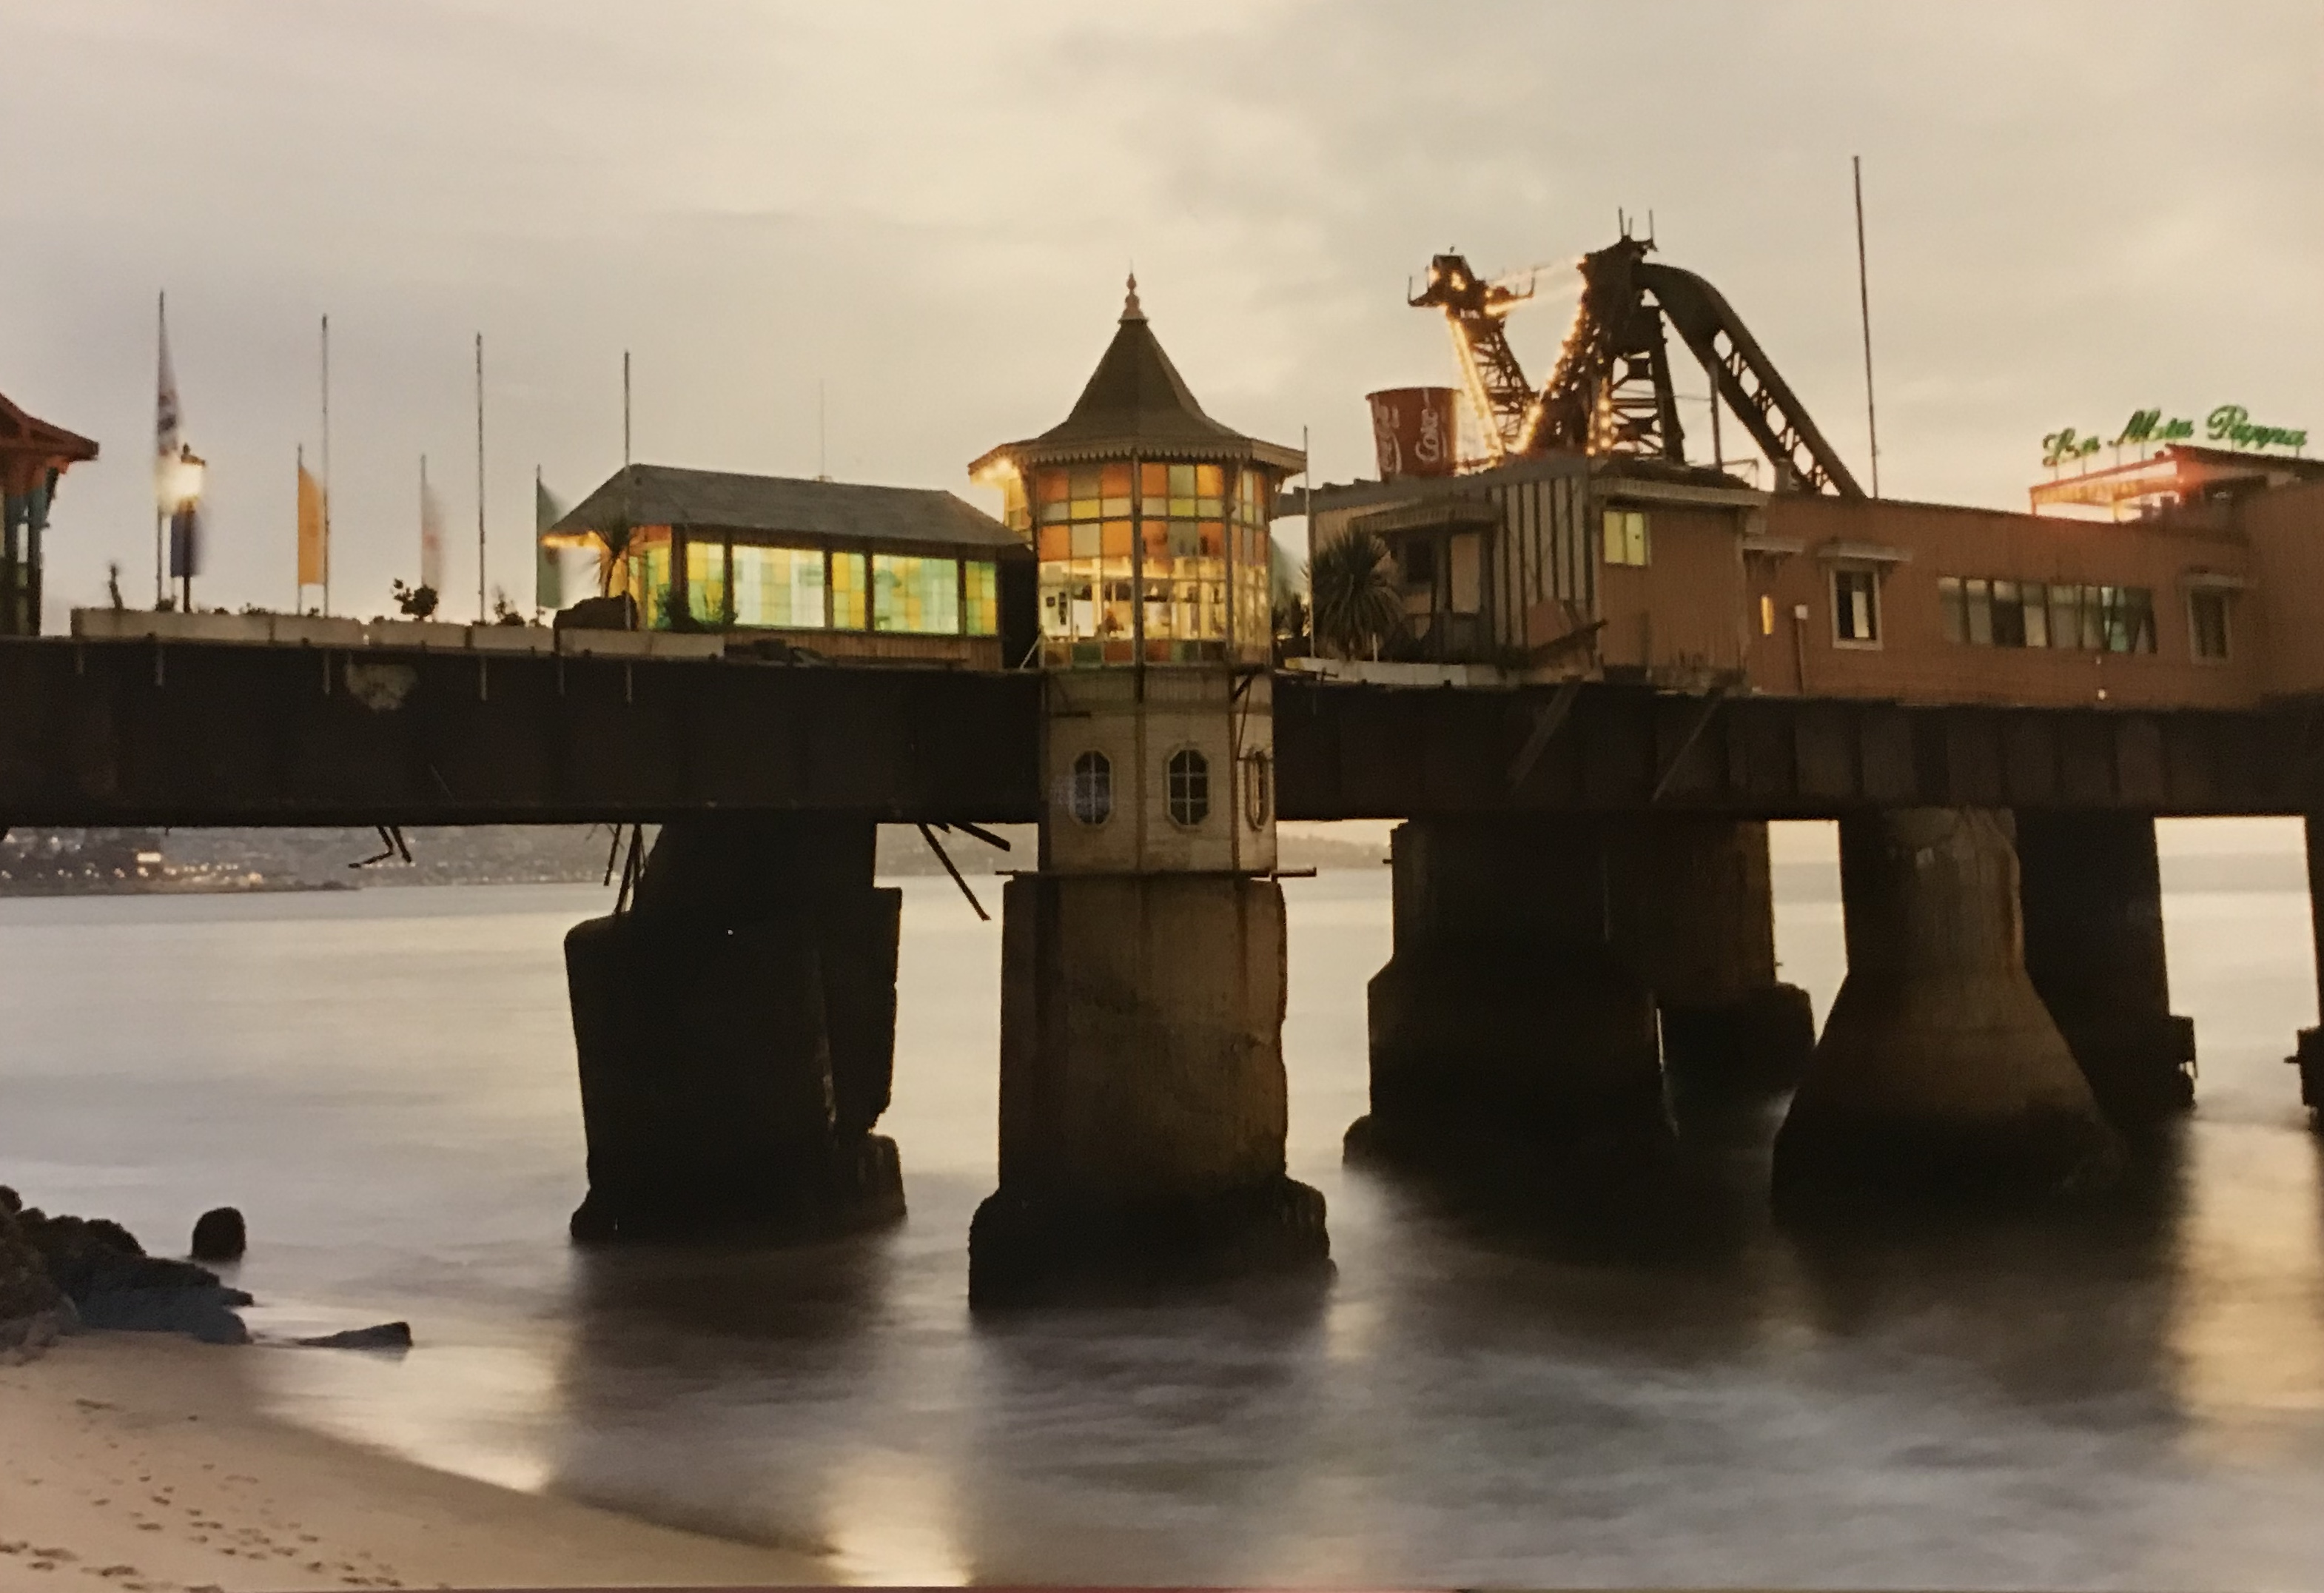 Enterreno - Fotos históricas de chile - fotos antiguas de Chile - Muelle Vergara en Viña del Mar, 1995